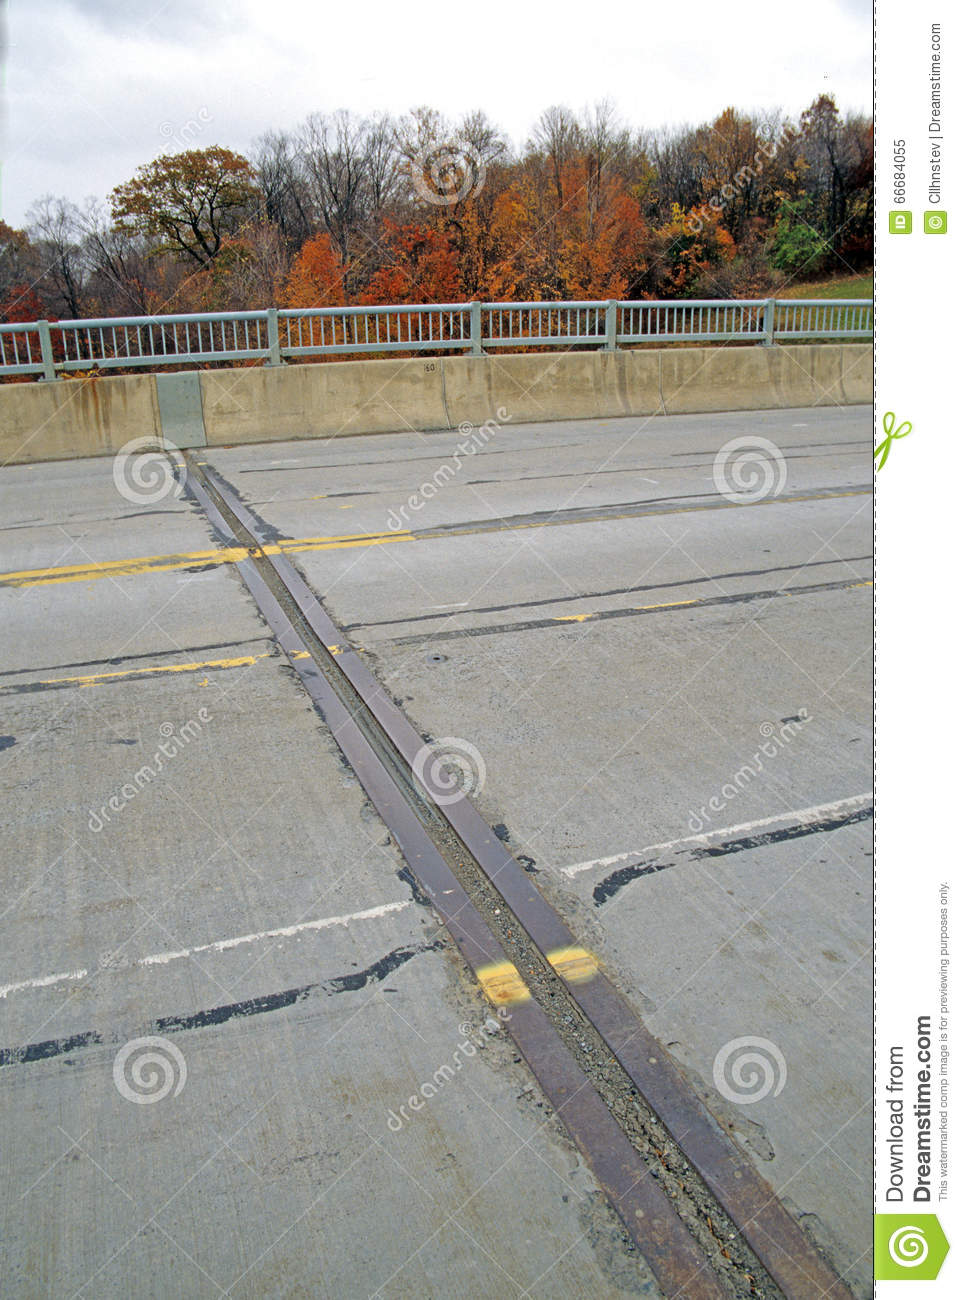 Expansion joint on bridge stock image  Image of settlement - 66684055